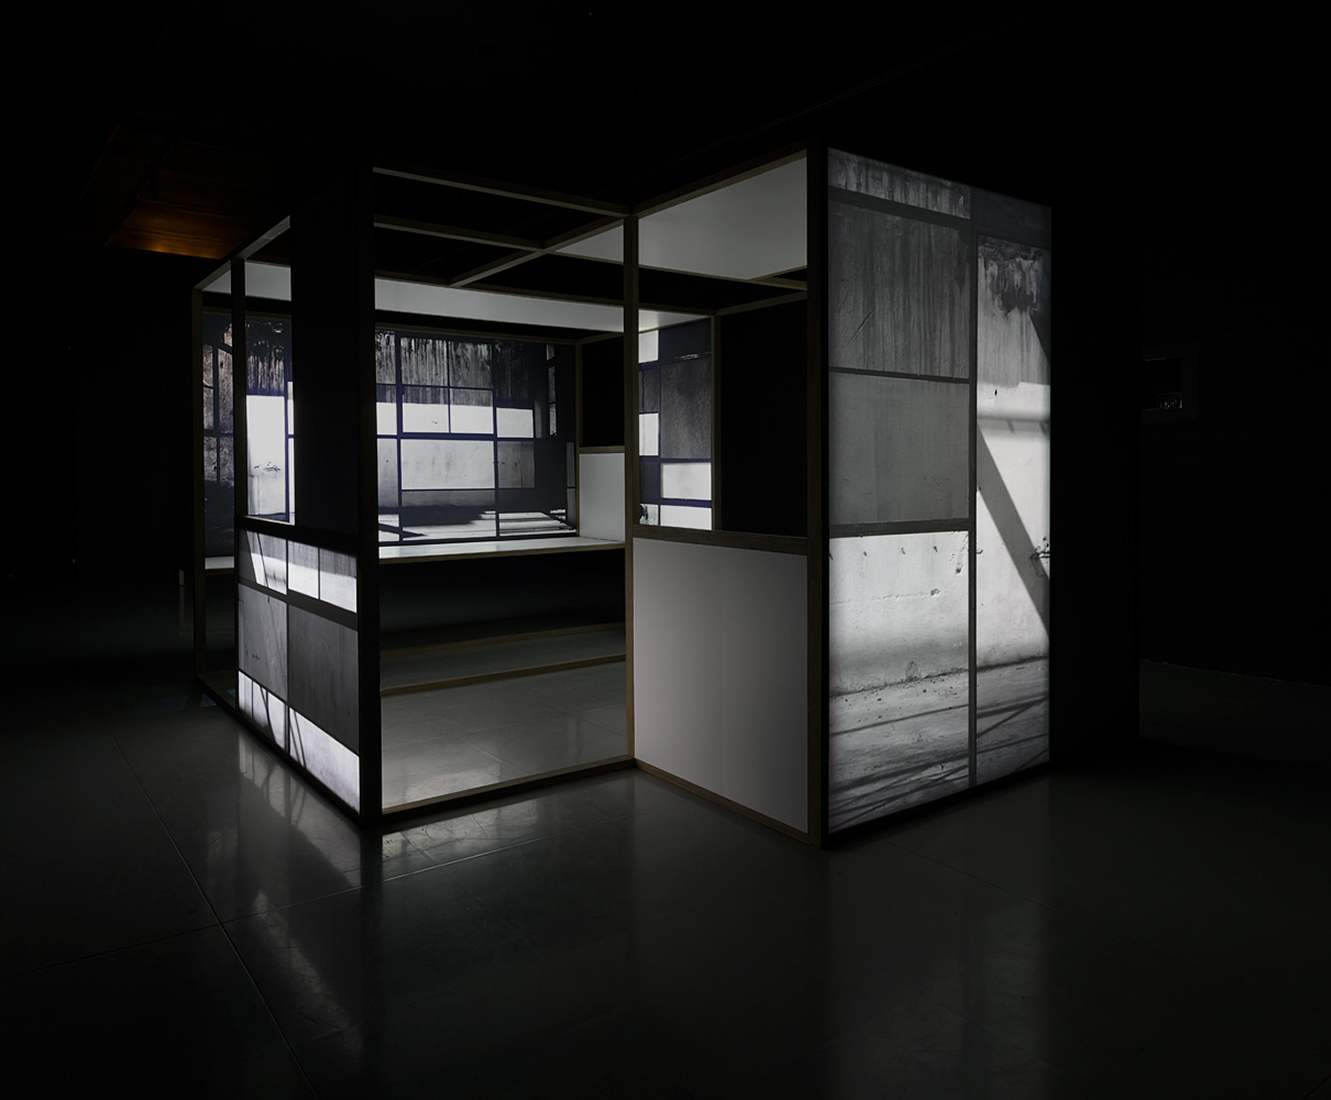 Nada más que las horas , 2013.  Five channel video installation at MAZ Museum. Wood, Formica and polyester screens.300 x 425 x 220 cm.